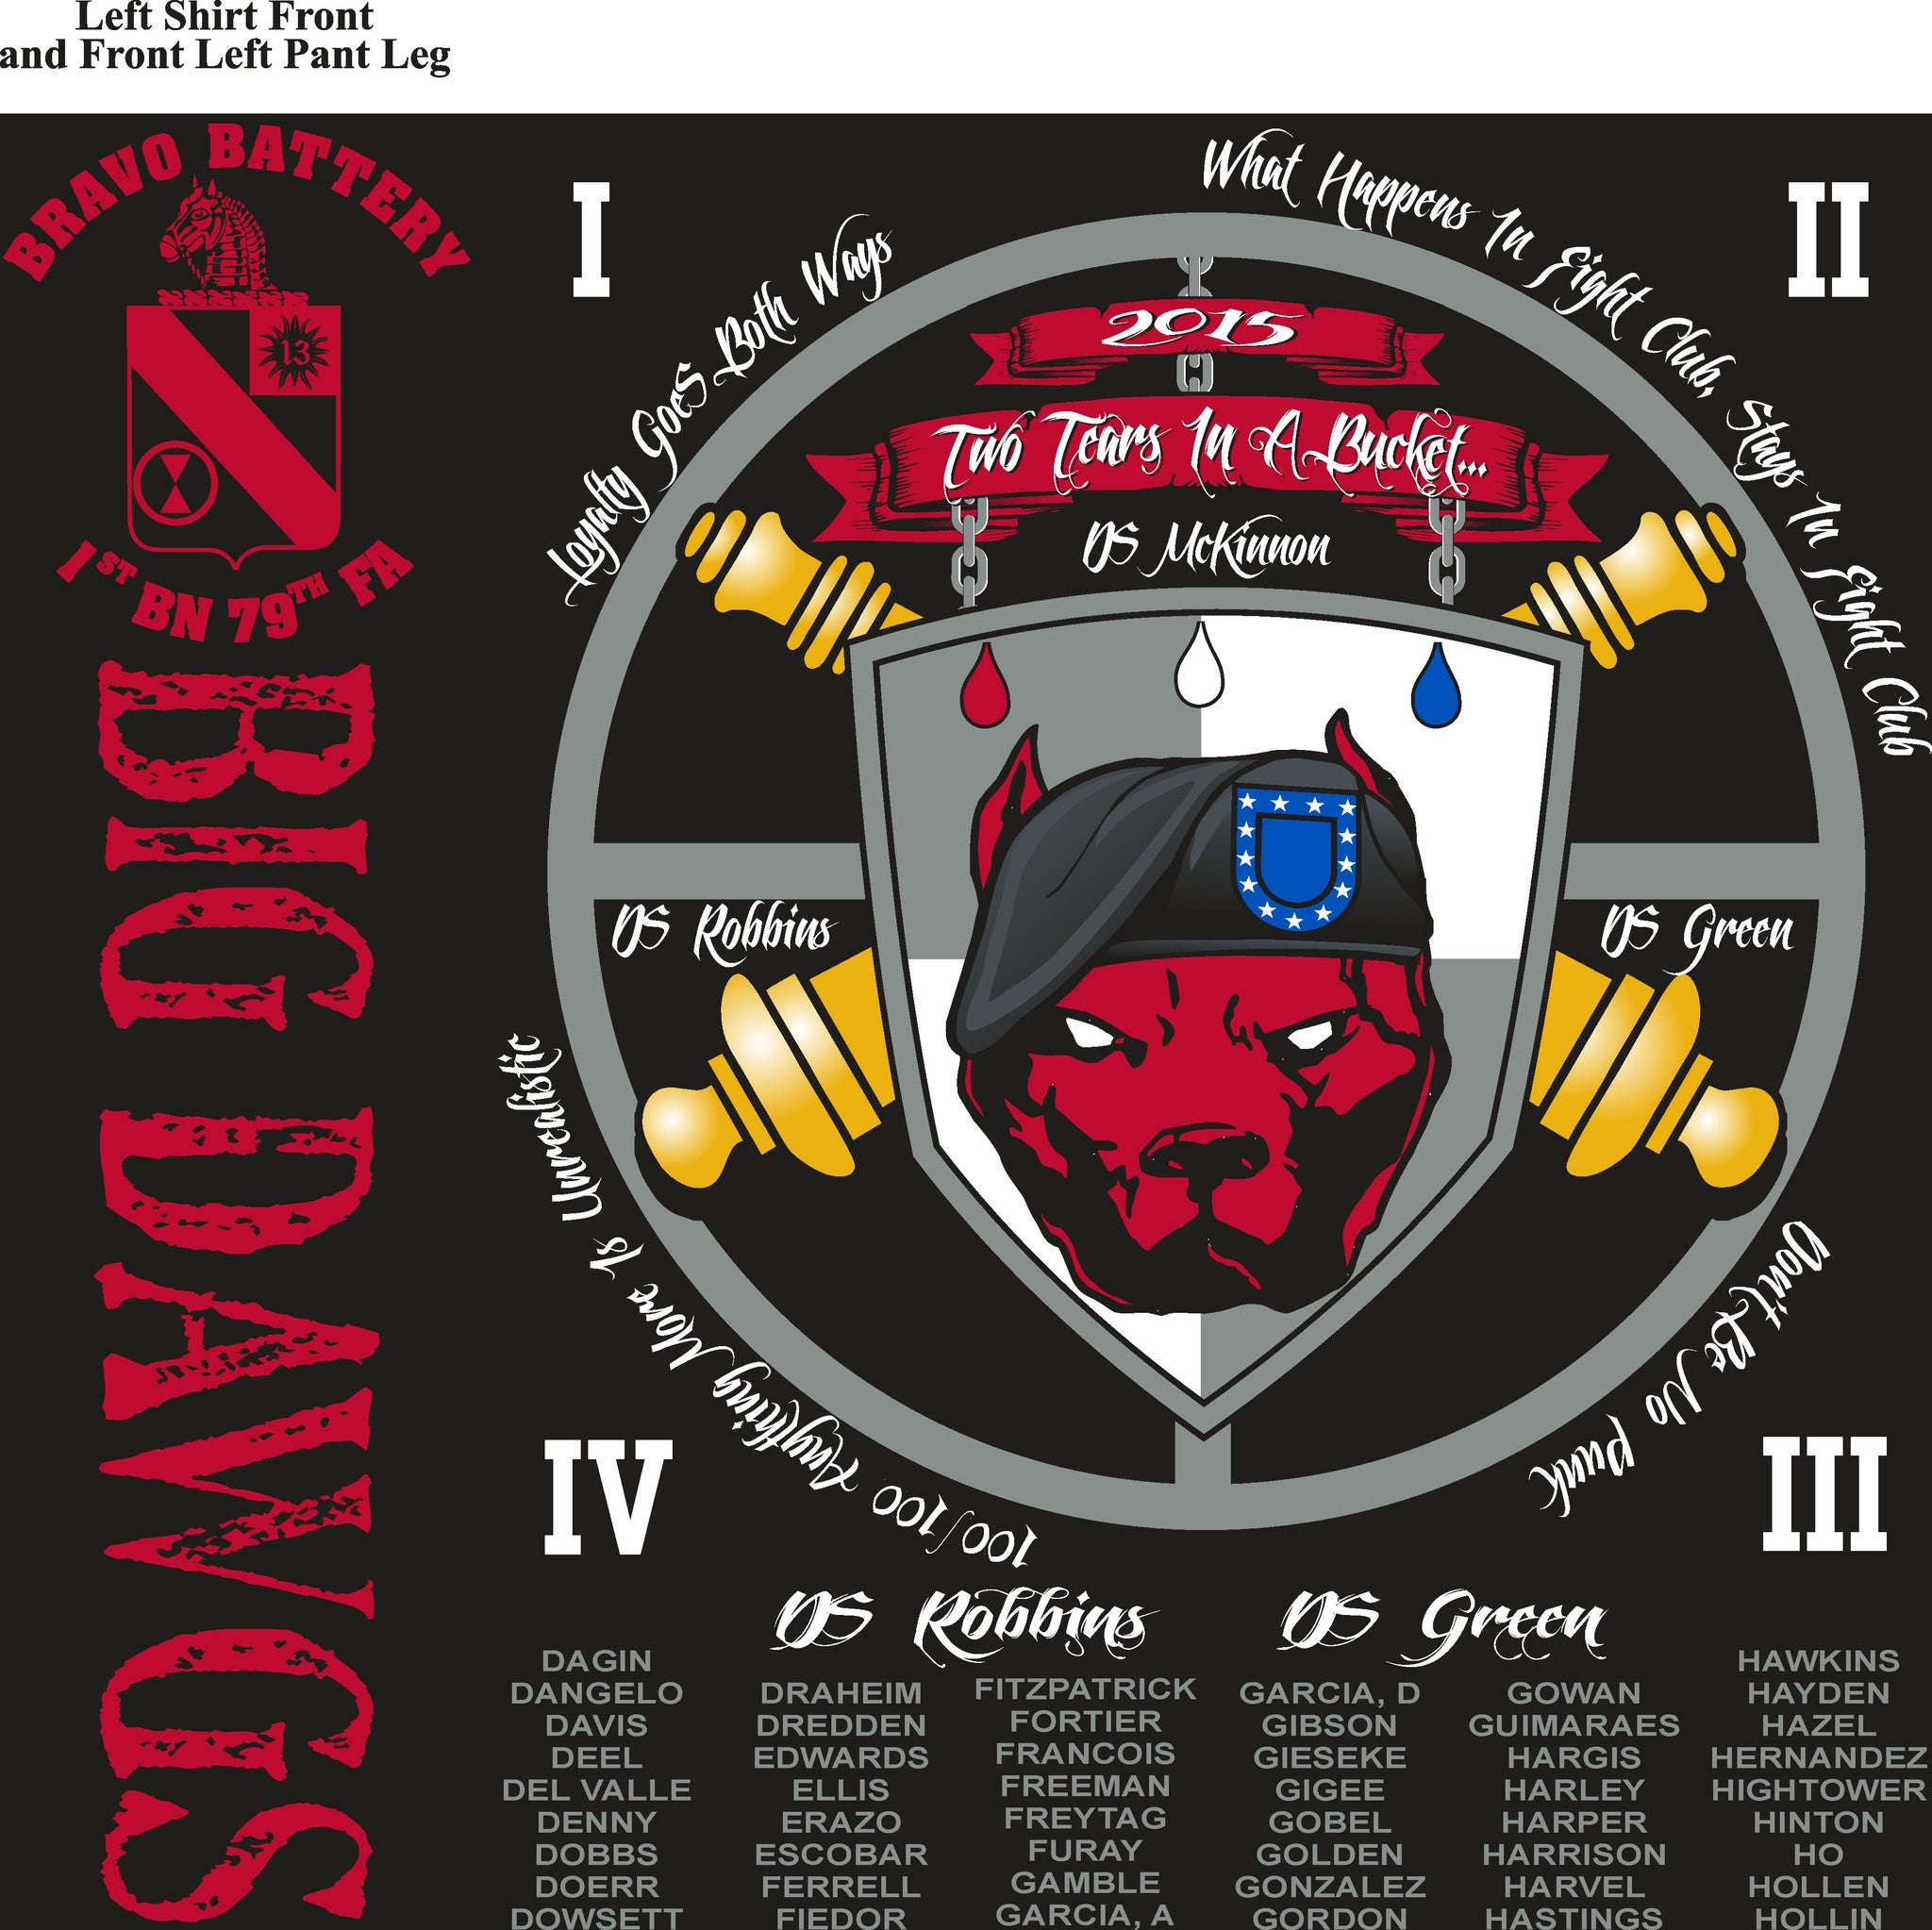 Platoon Shirts BRAVO 1st 79th BIG DAWGS MAY 2015